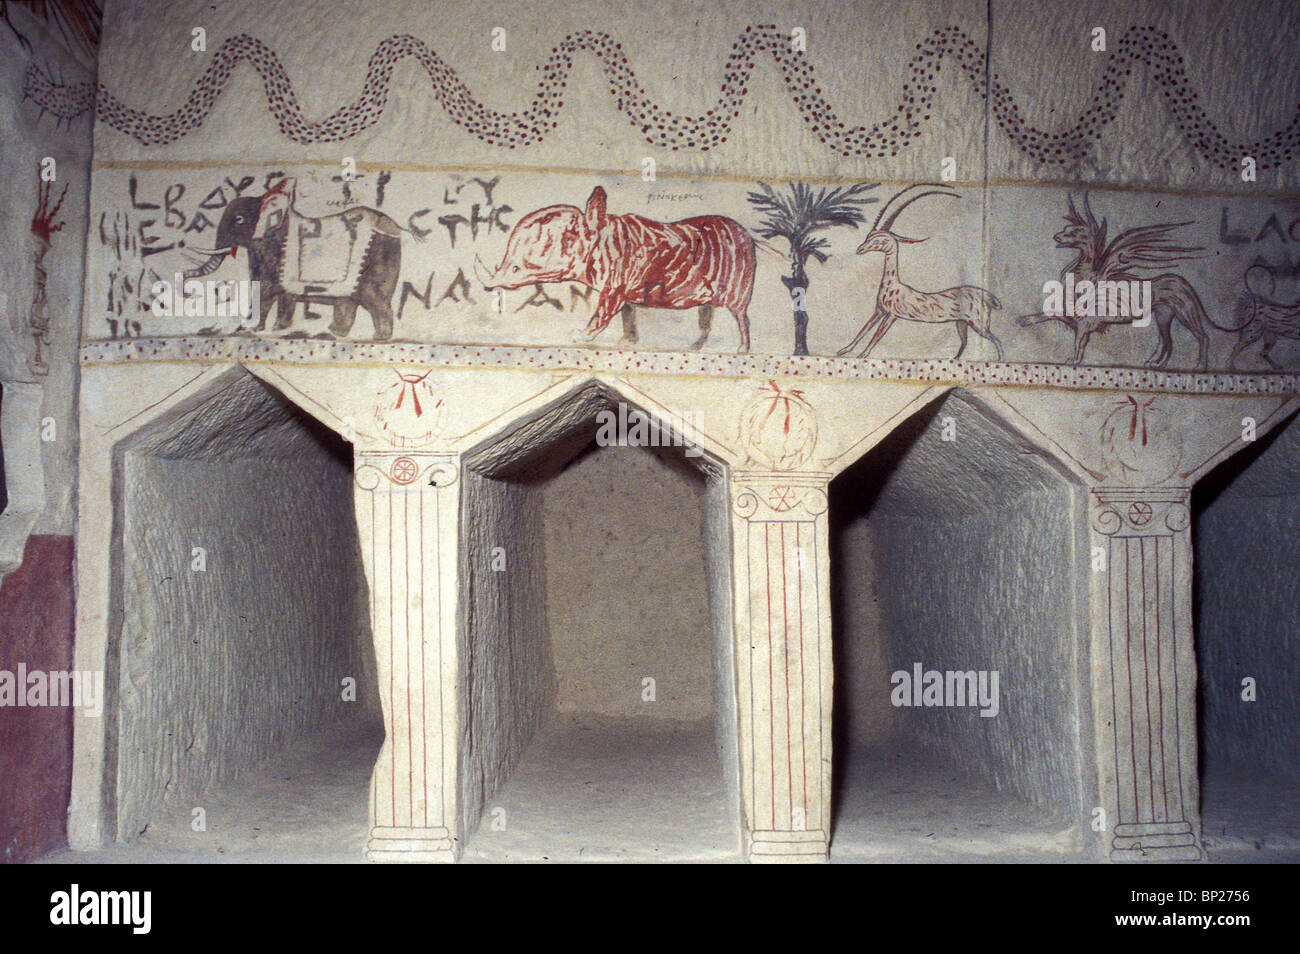 MARESHA HELENISTIC PERIOD (3 -2ND C.A.D.) BURIAL CAVES CARVED IN THE CHALK-STONE. PIC: DETAIL OF ONE OF THE MANY - Stock Image